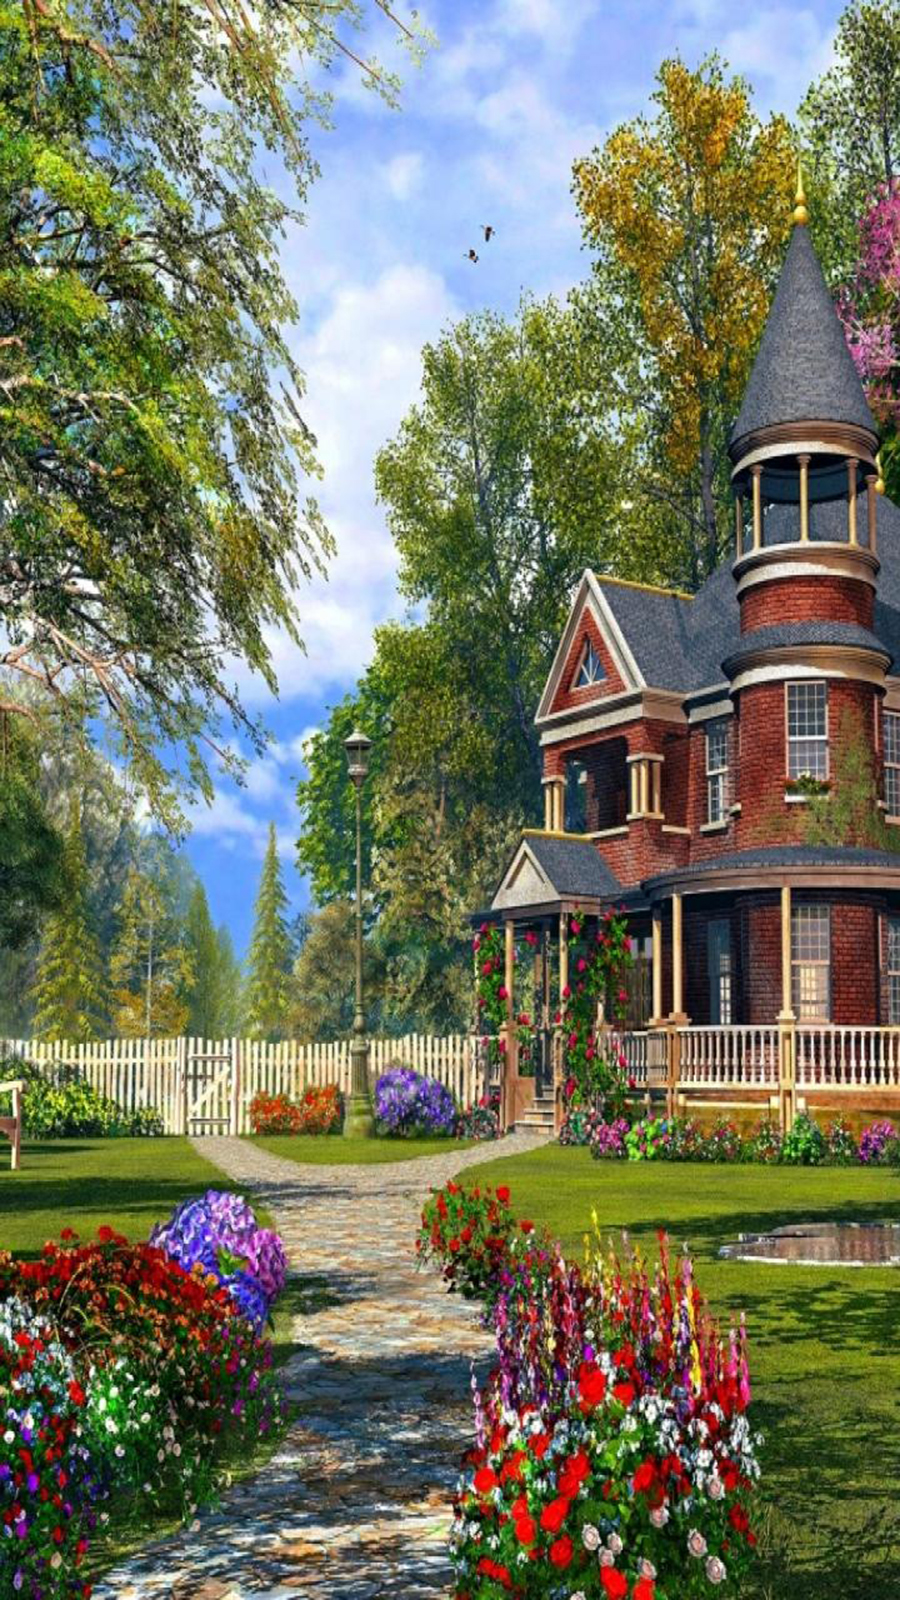 House HD Wallpaper – Fantasy Houses Wallpapers Free Download